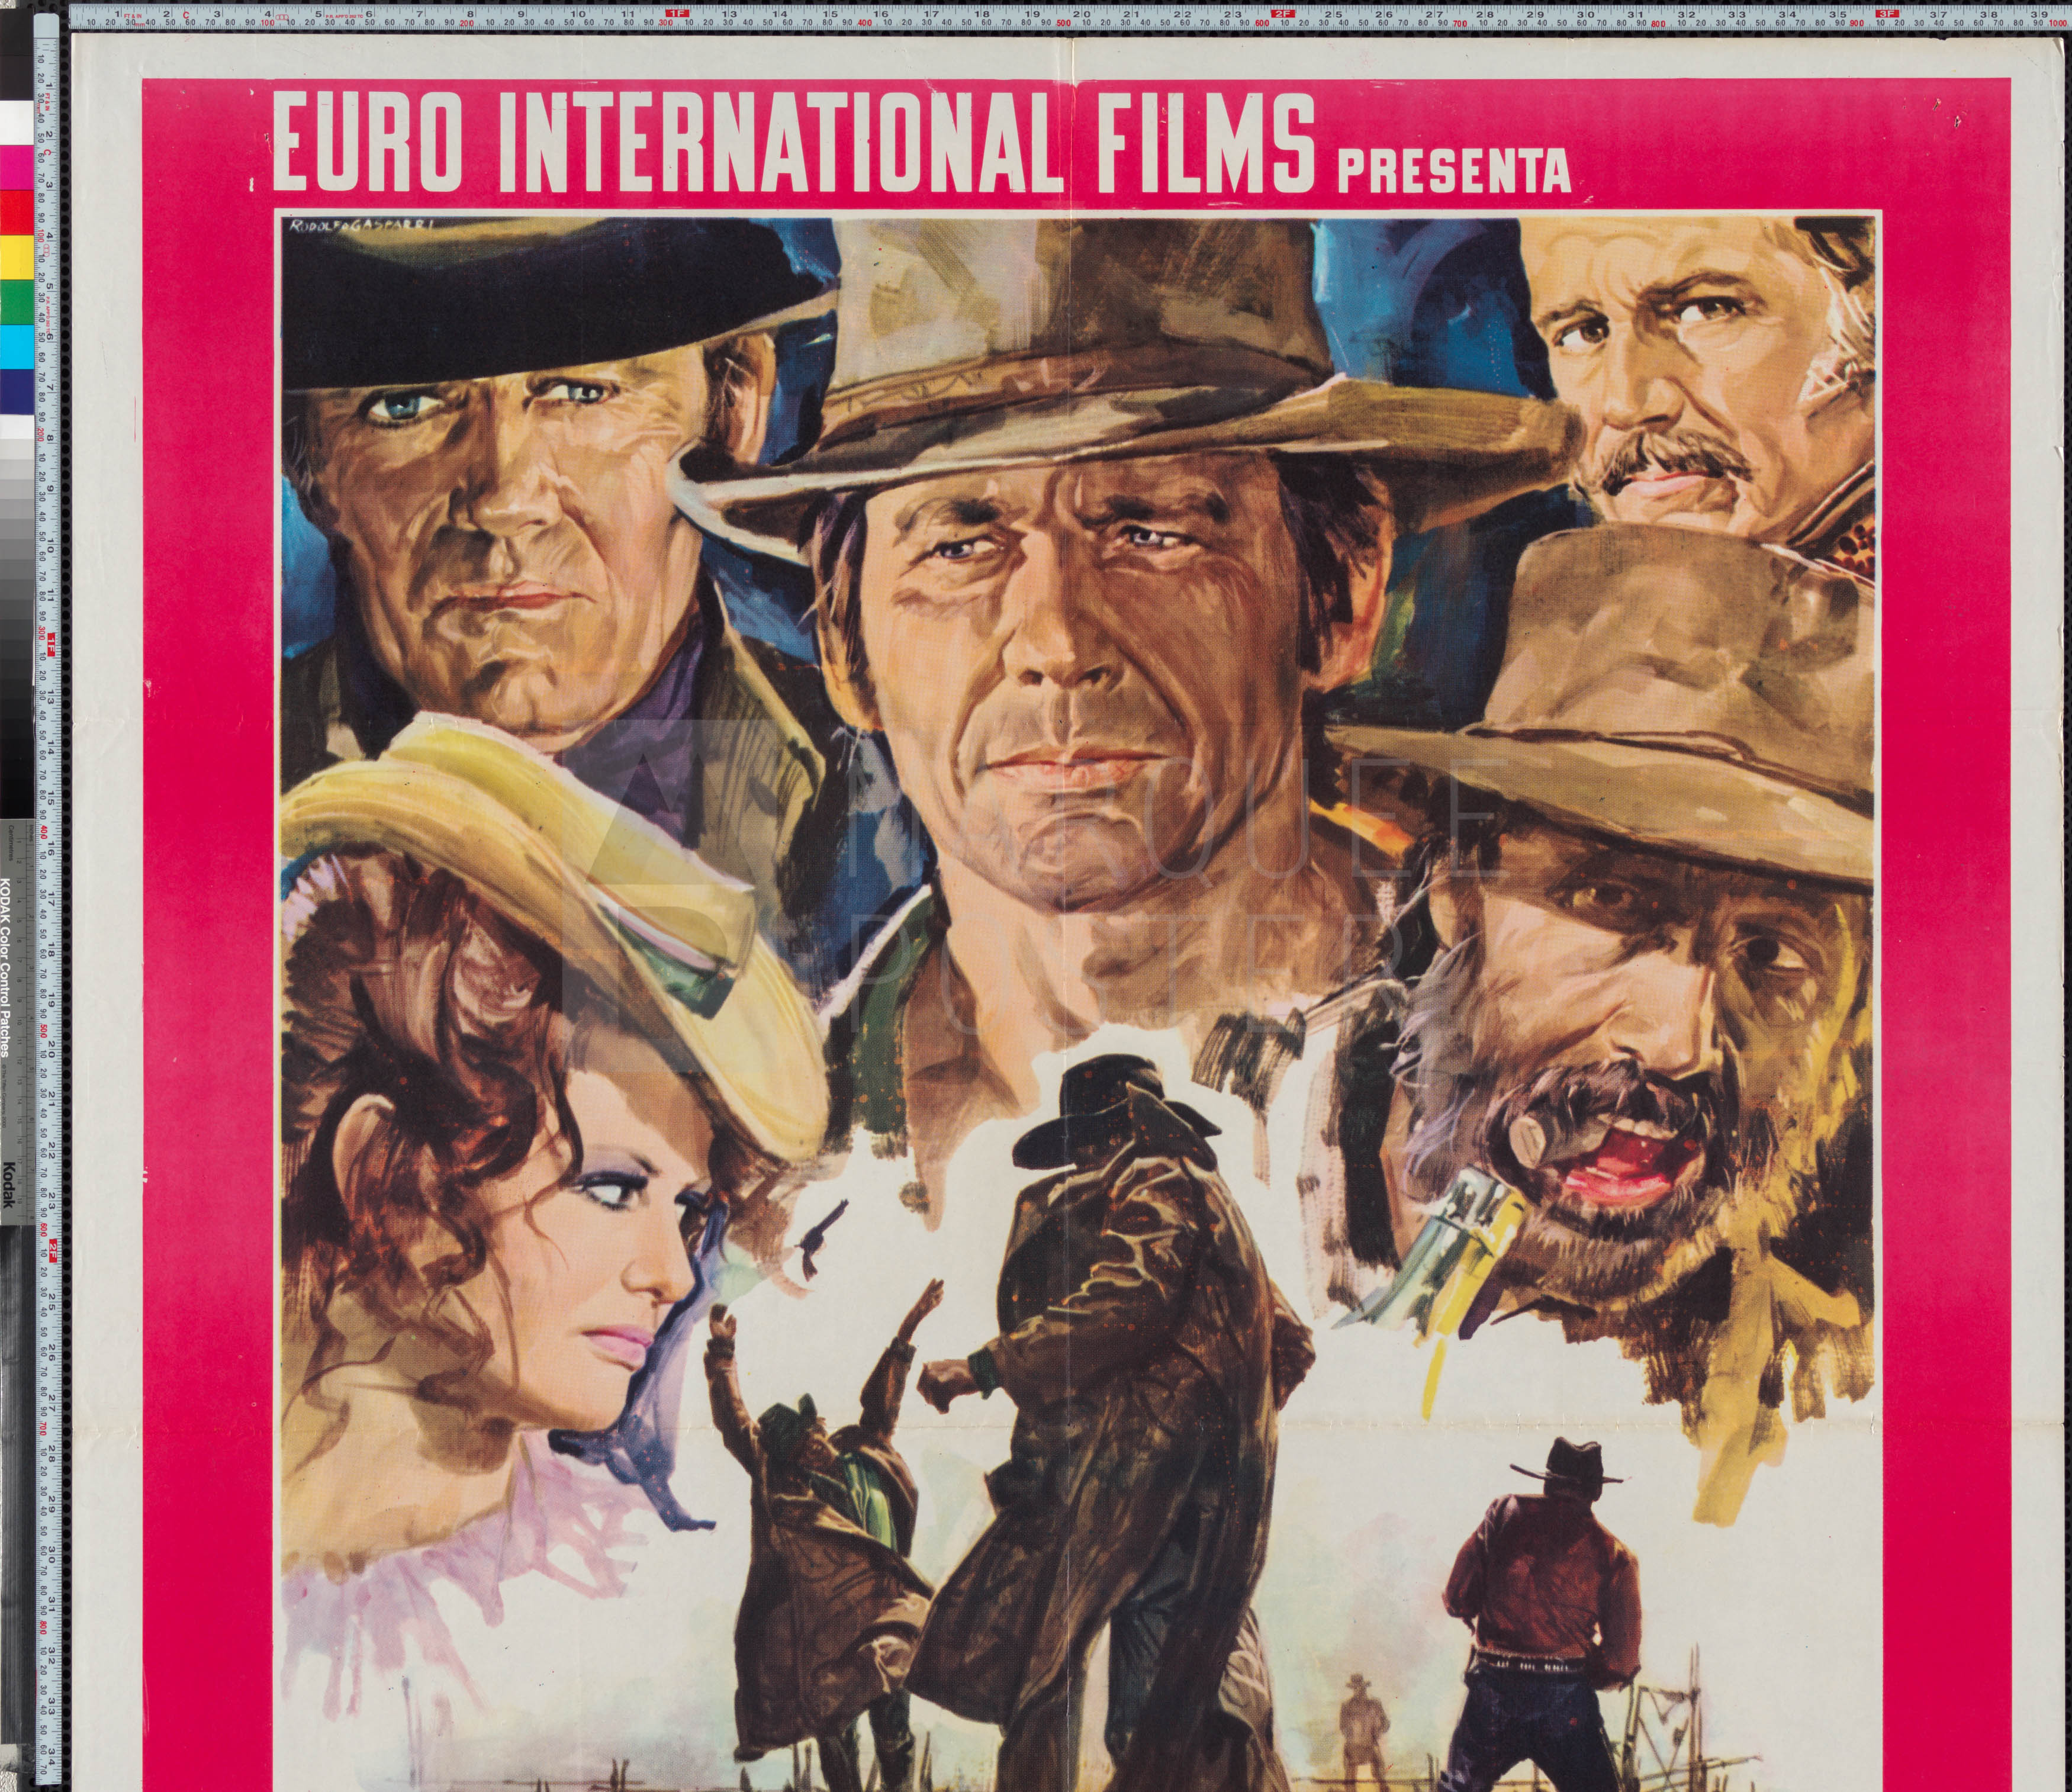 14-once-upon-a-time-in-the-west-pink-border-style-italian-2-foglio-1968-02